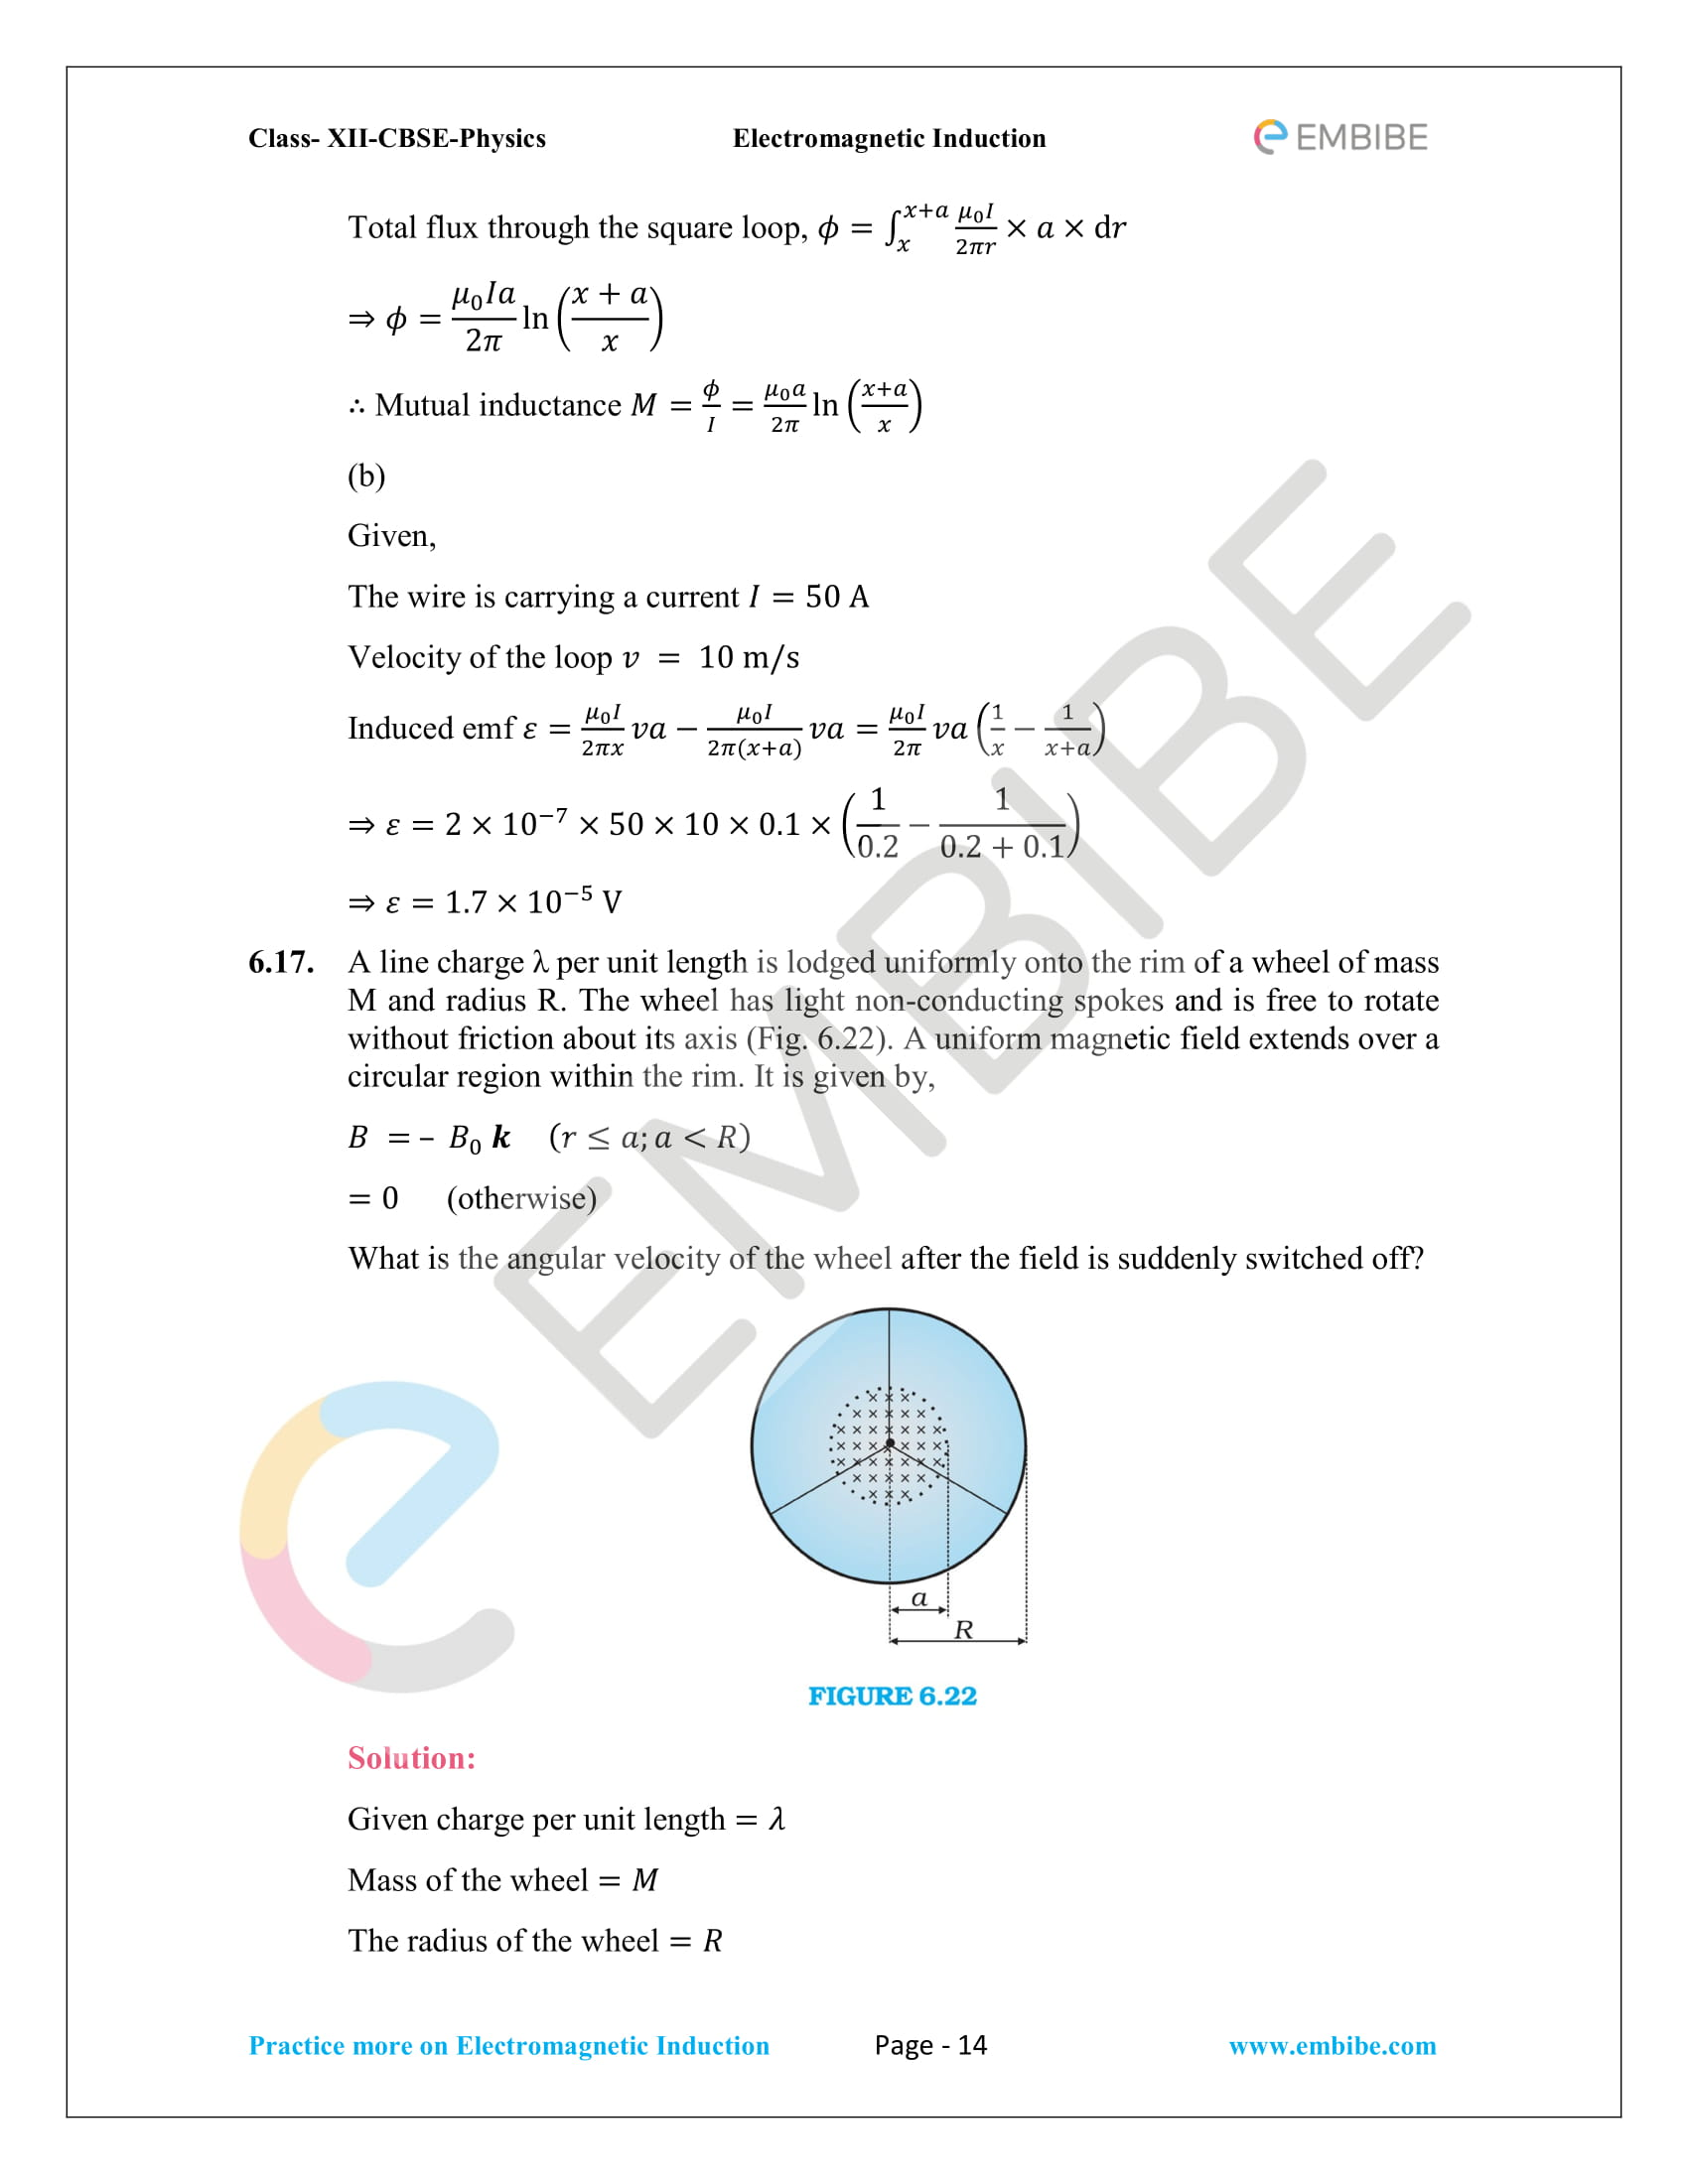 CBSE NCERT Solutions Class 12 Physics Chapter 6 PDF - Electromagnetic Induction - 14